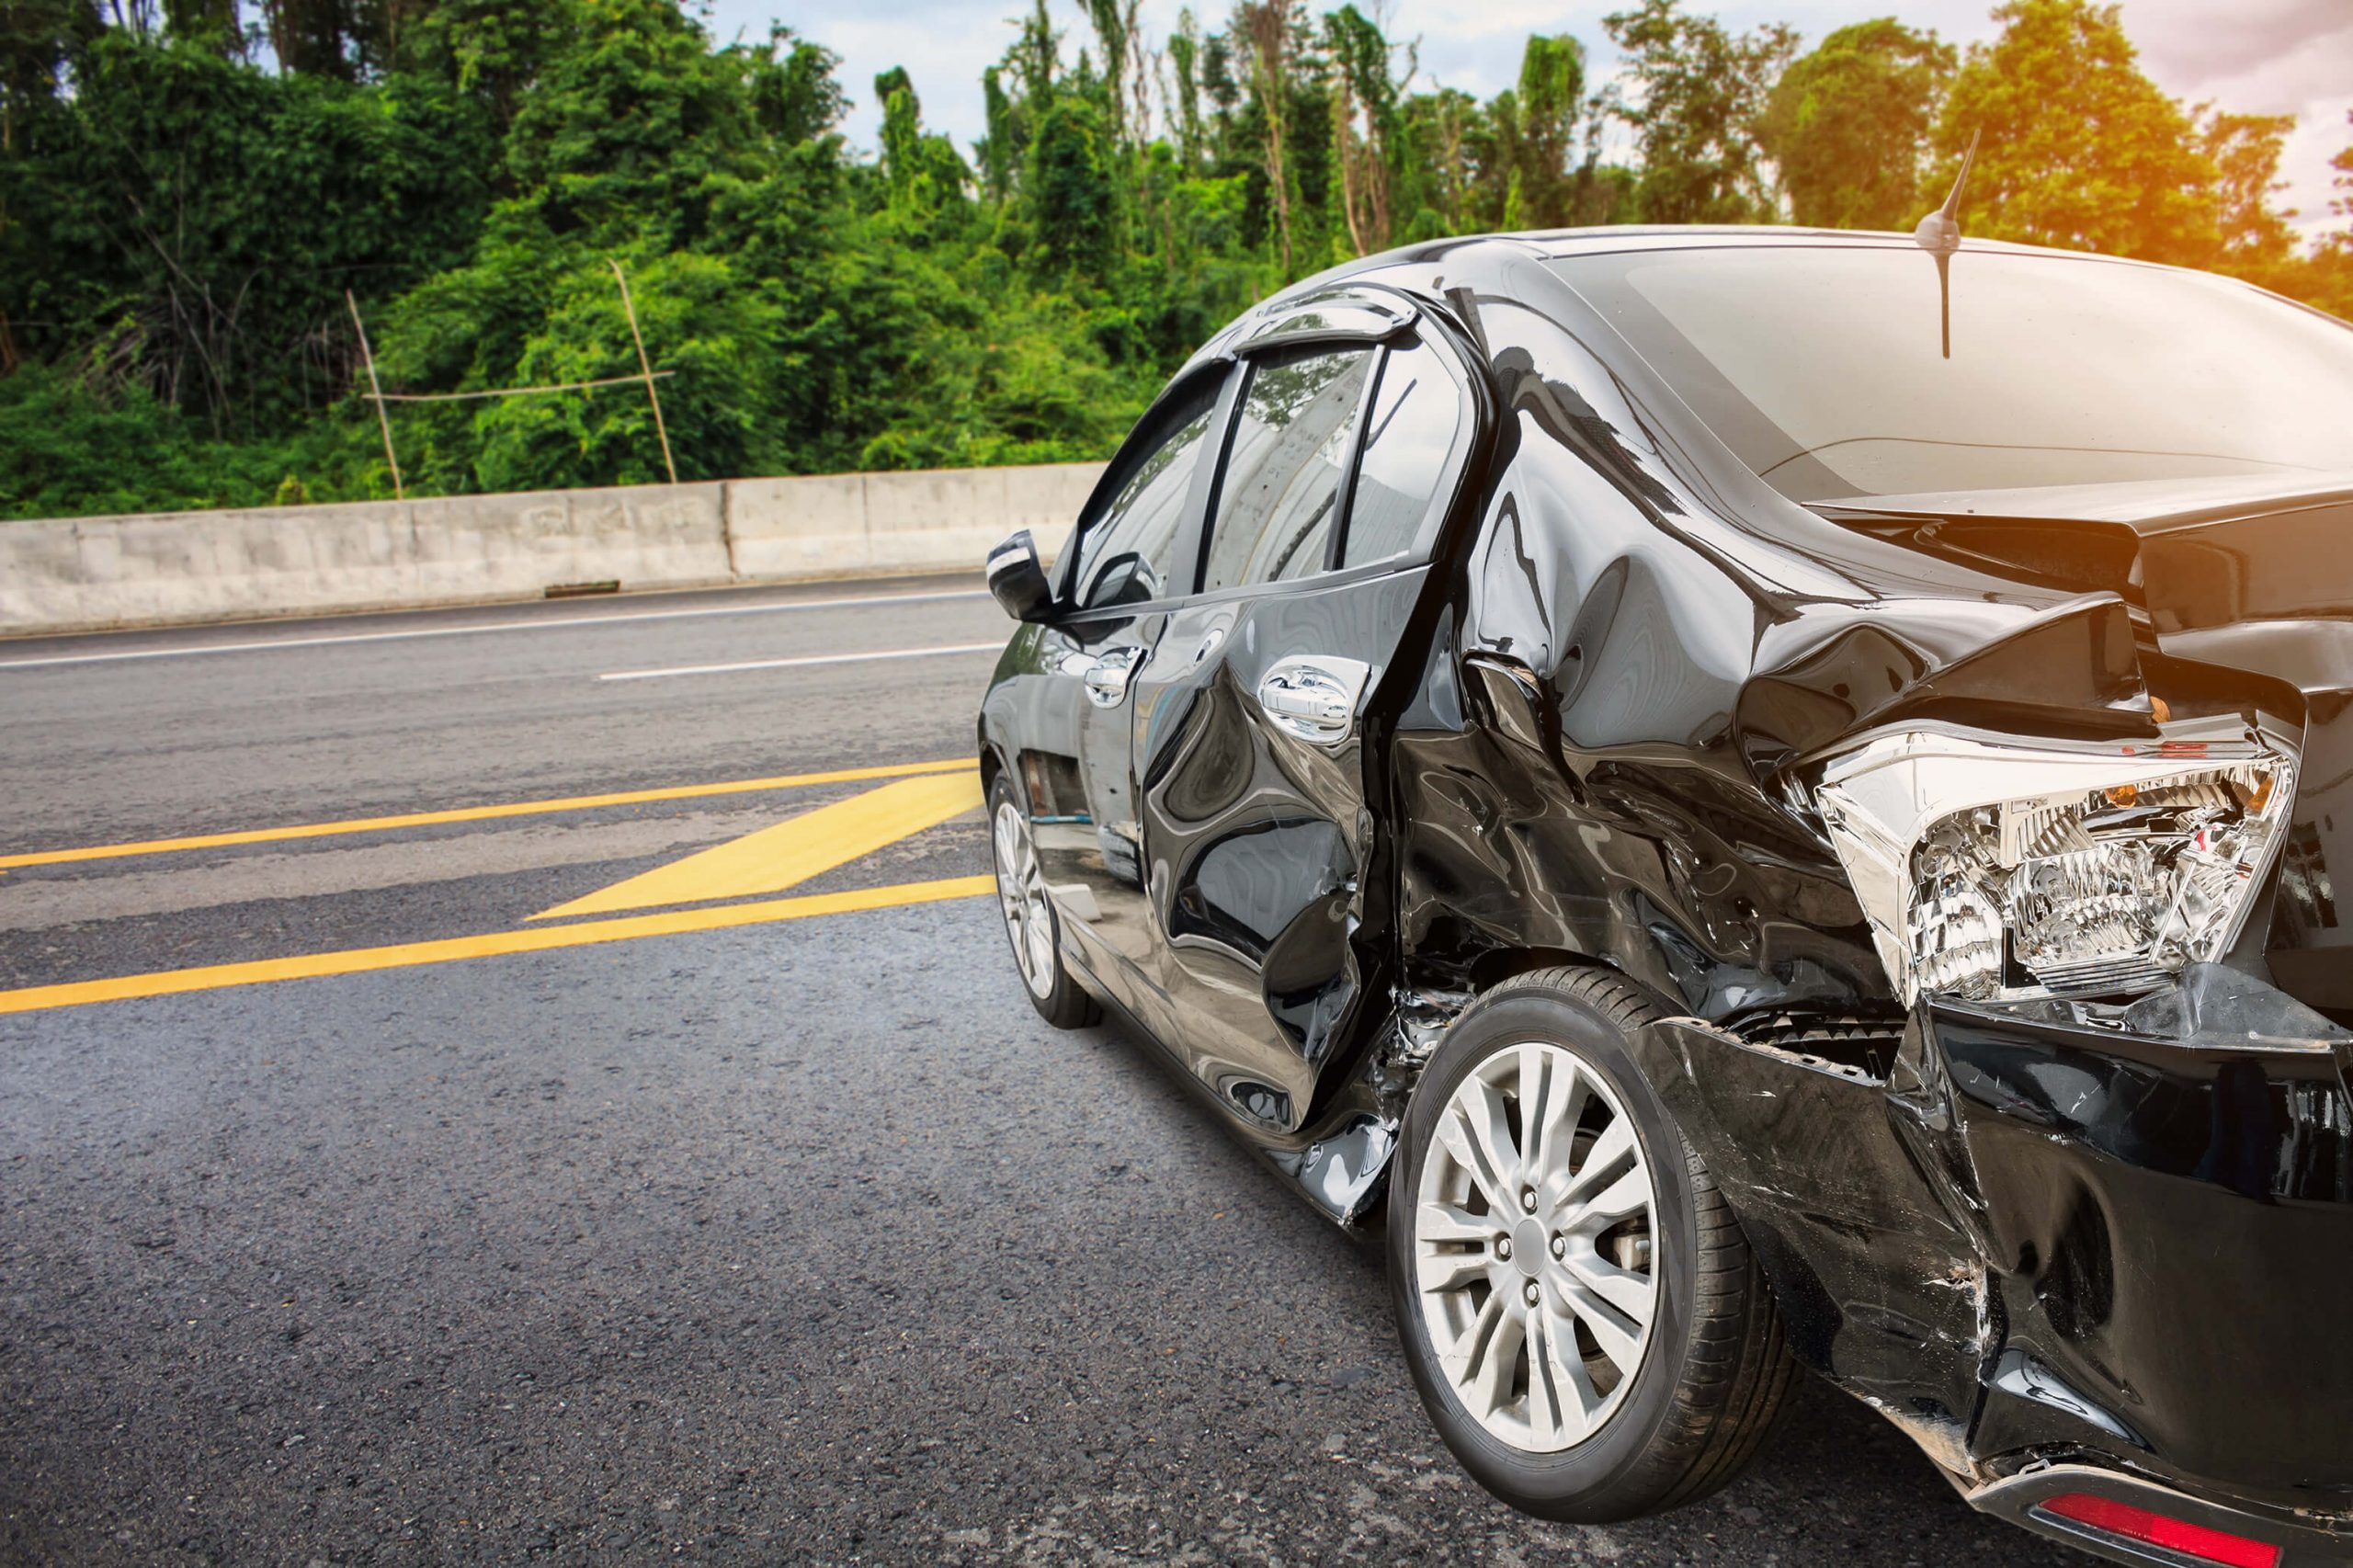 How Do You Prove Liability for a Vehicle Accident?